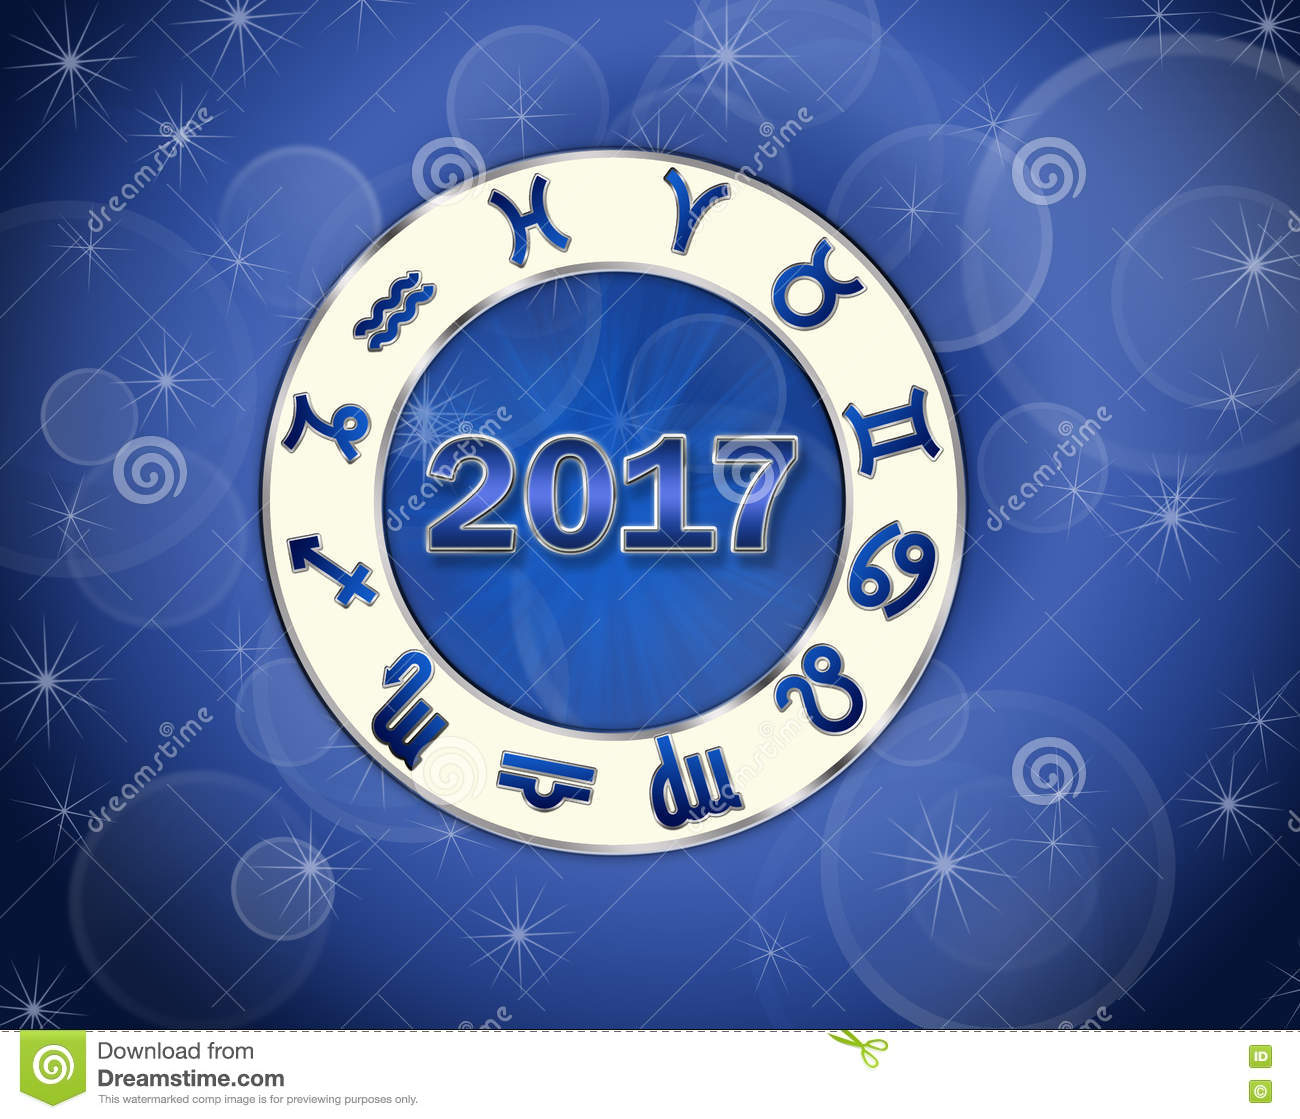 Christmas astro 2017 blue natal chart with horoscope symbols stock christmas astro 2017 blue natal chart with horoscope symbols royalty free illustration geenschuldenfo Gallery